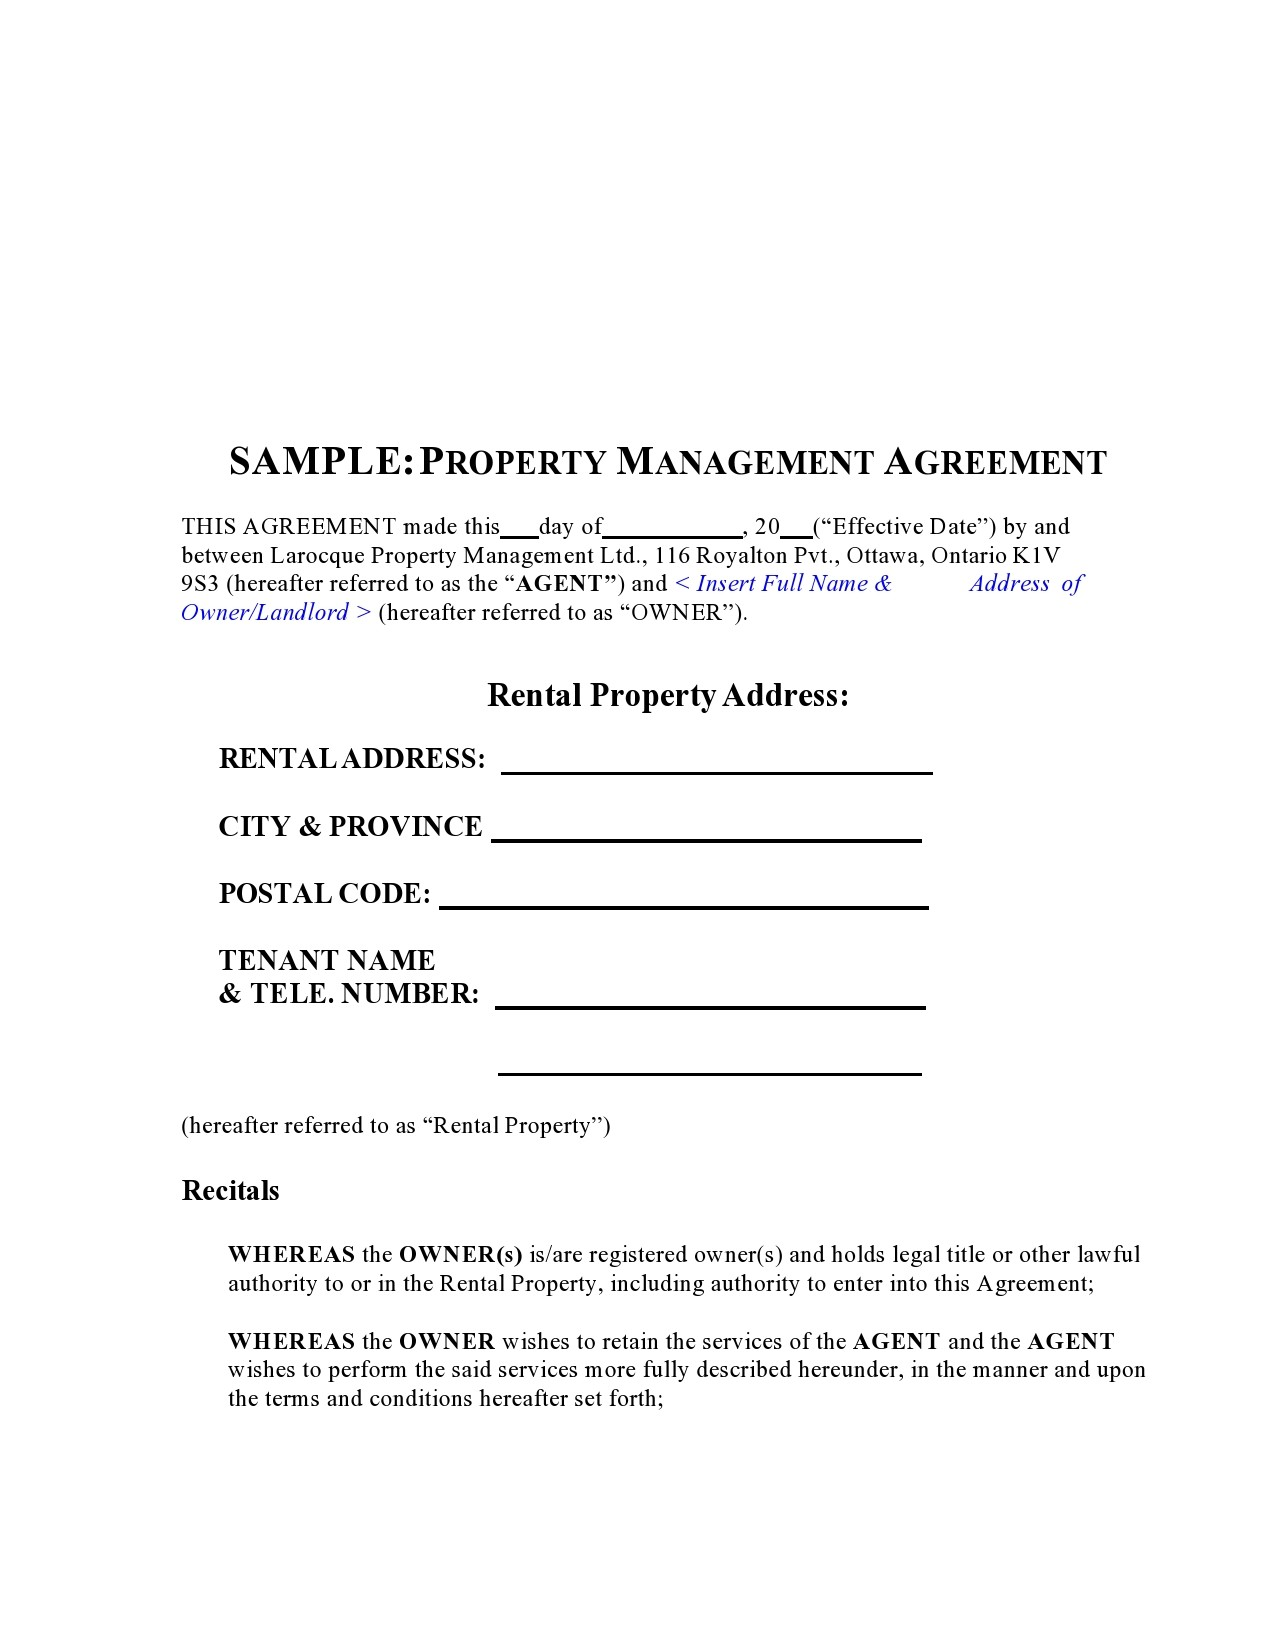 Free property management agreement 38